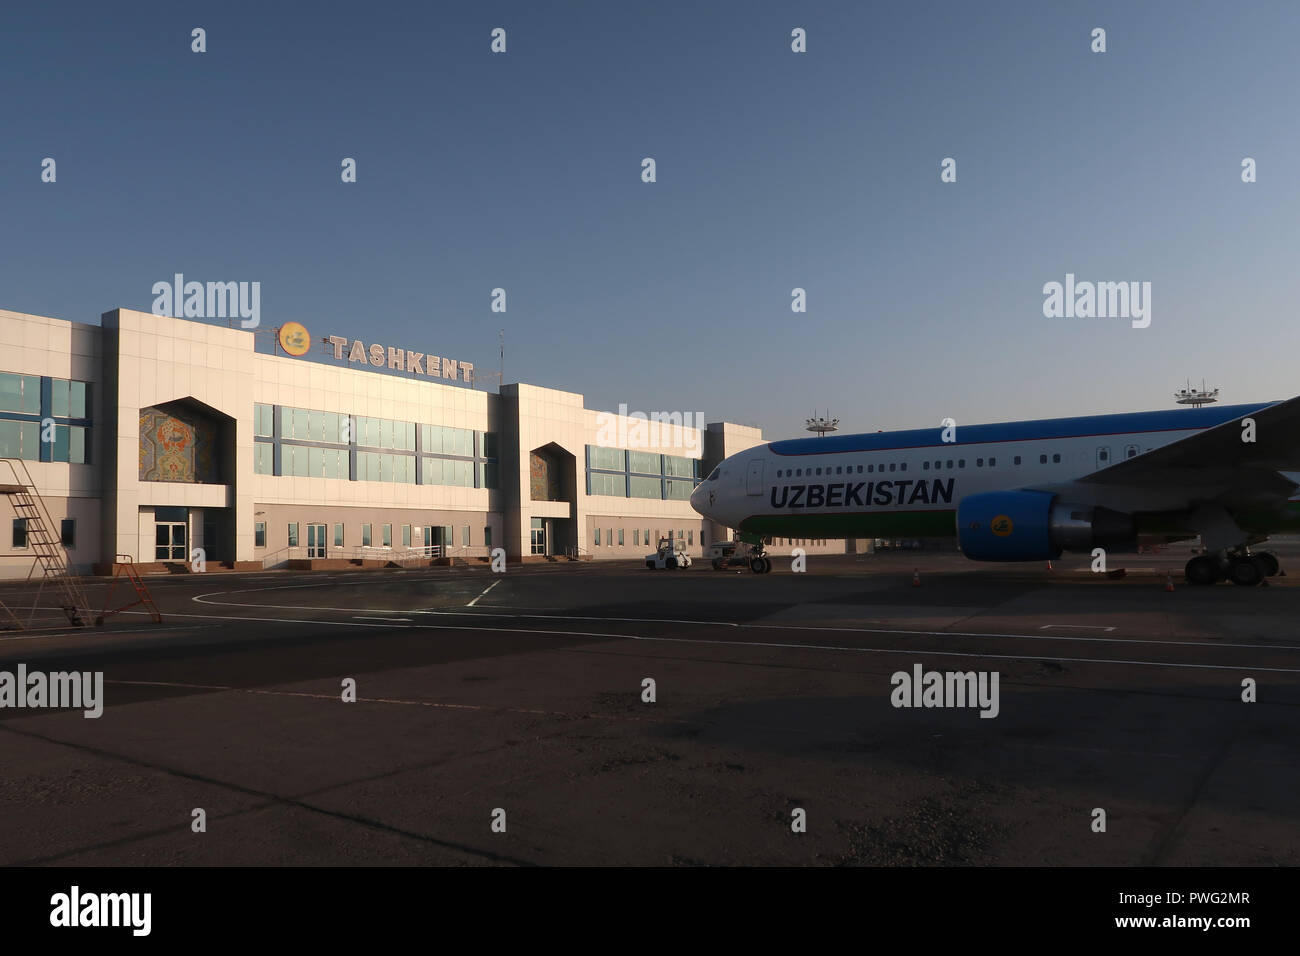 An airplane of National Air Company Uzbekistan Airways stand on the tarmac of terminal 3 for domestic flights in Tashkent Airport, Uzbekistan - Stock Image